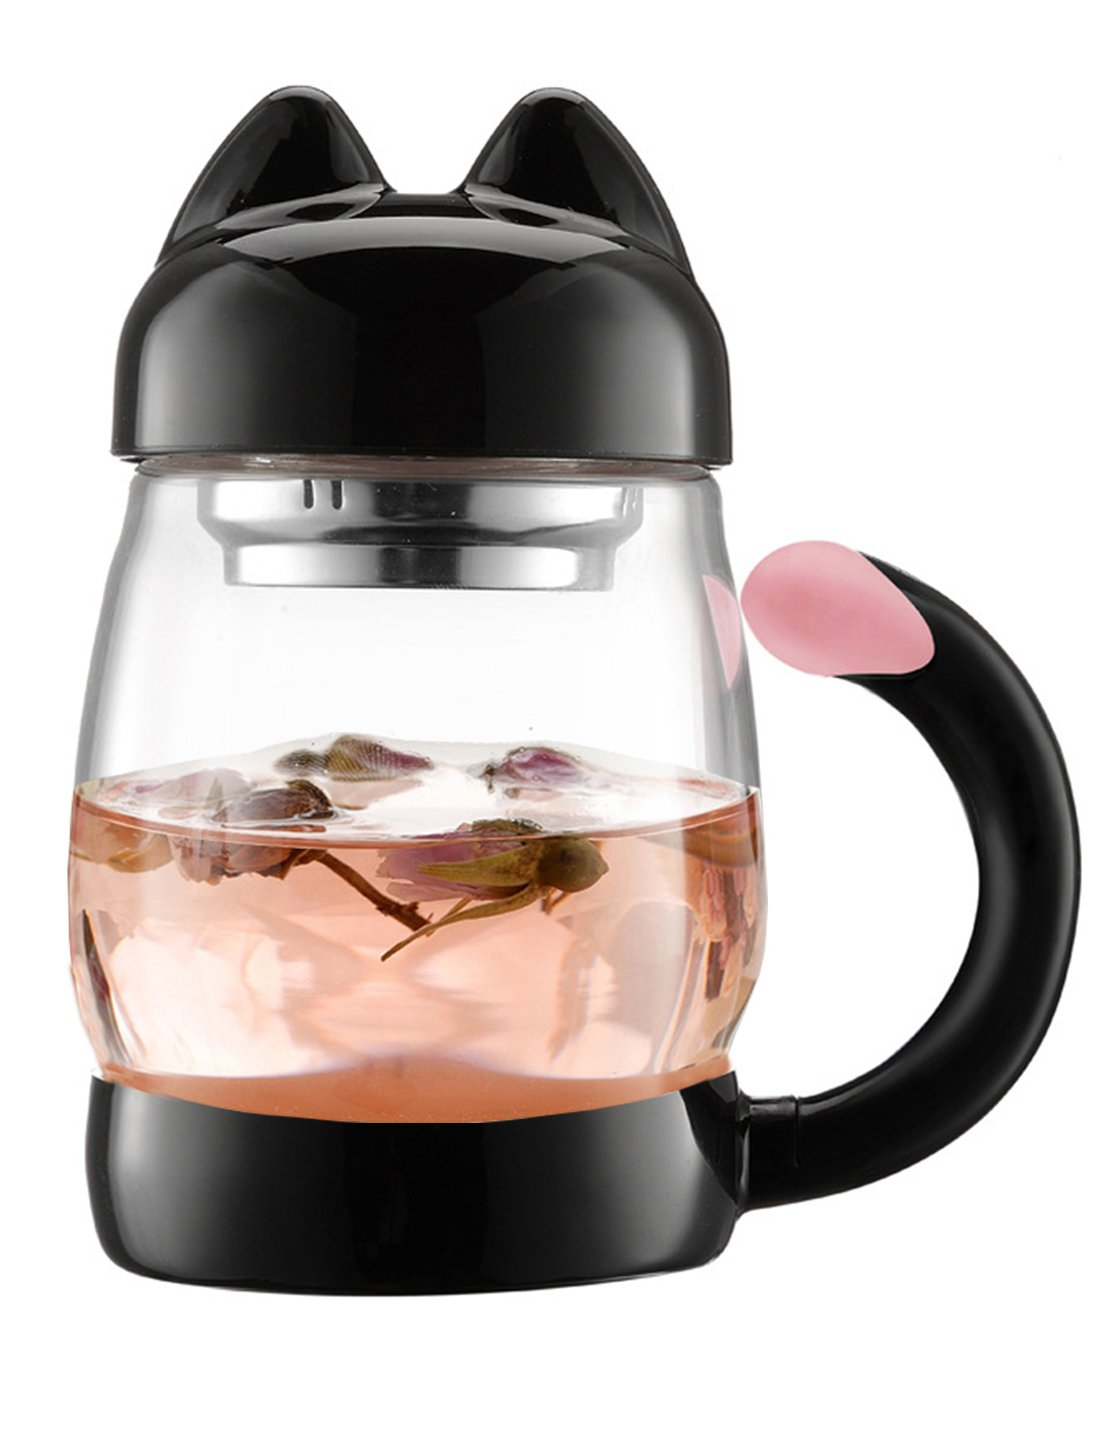 BZY 420 ml / 14 oz Portable Cute Cat Tail Glass Tea cup with a lid , Heat Resistant Mugs with a Strainer (Black)